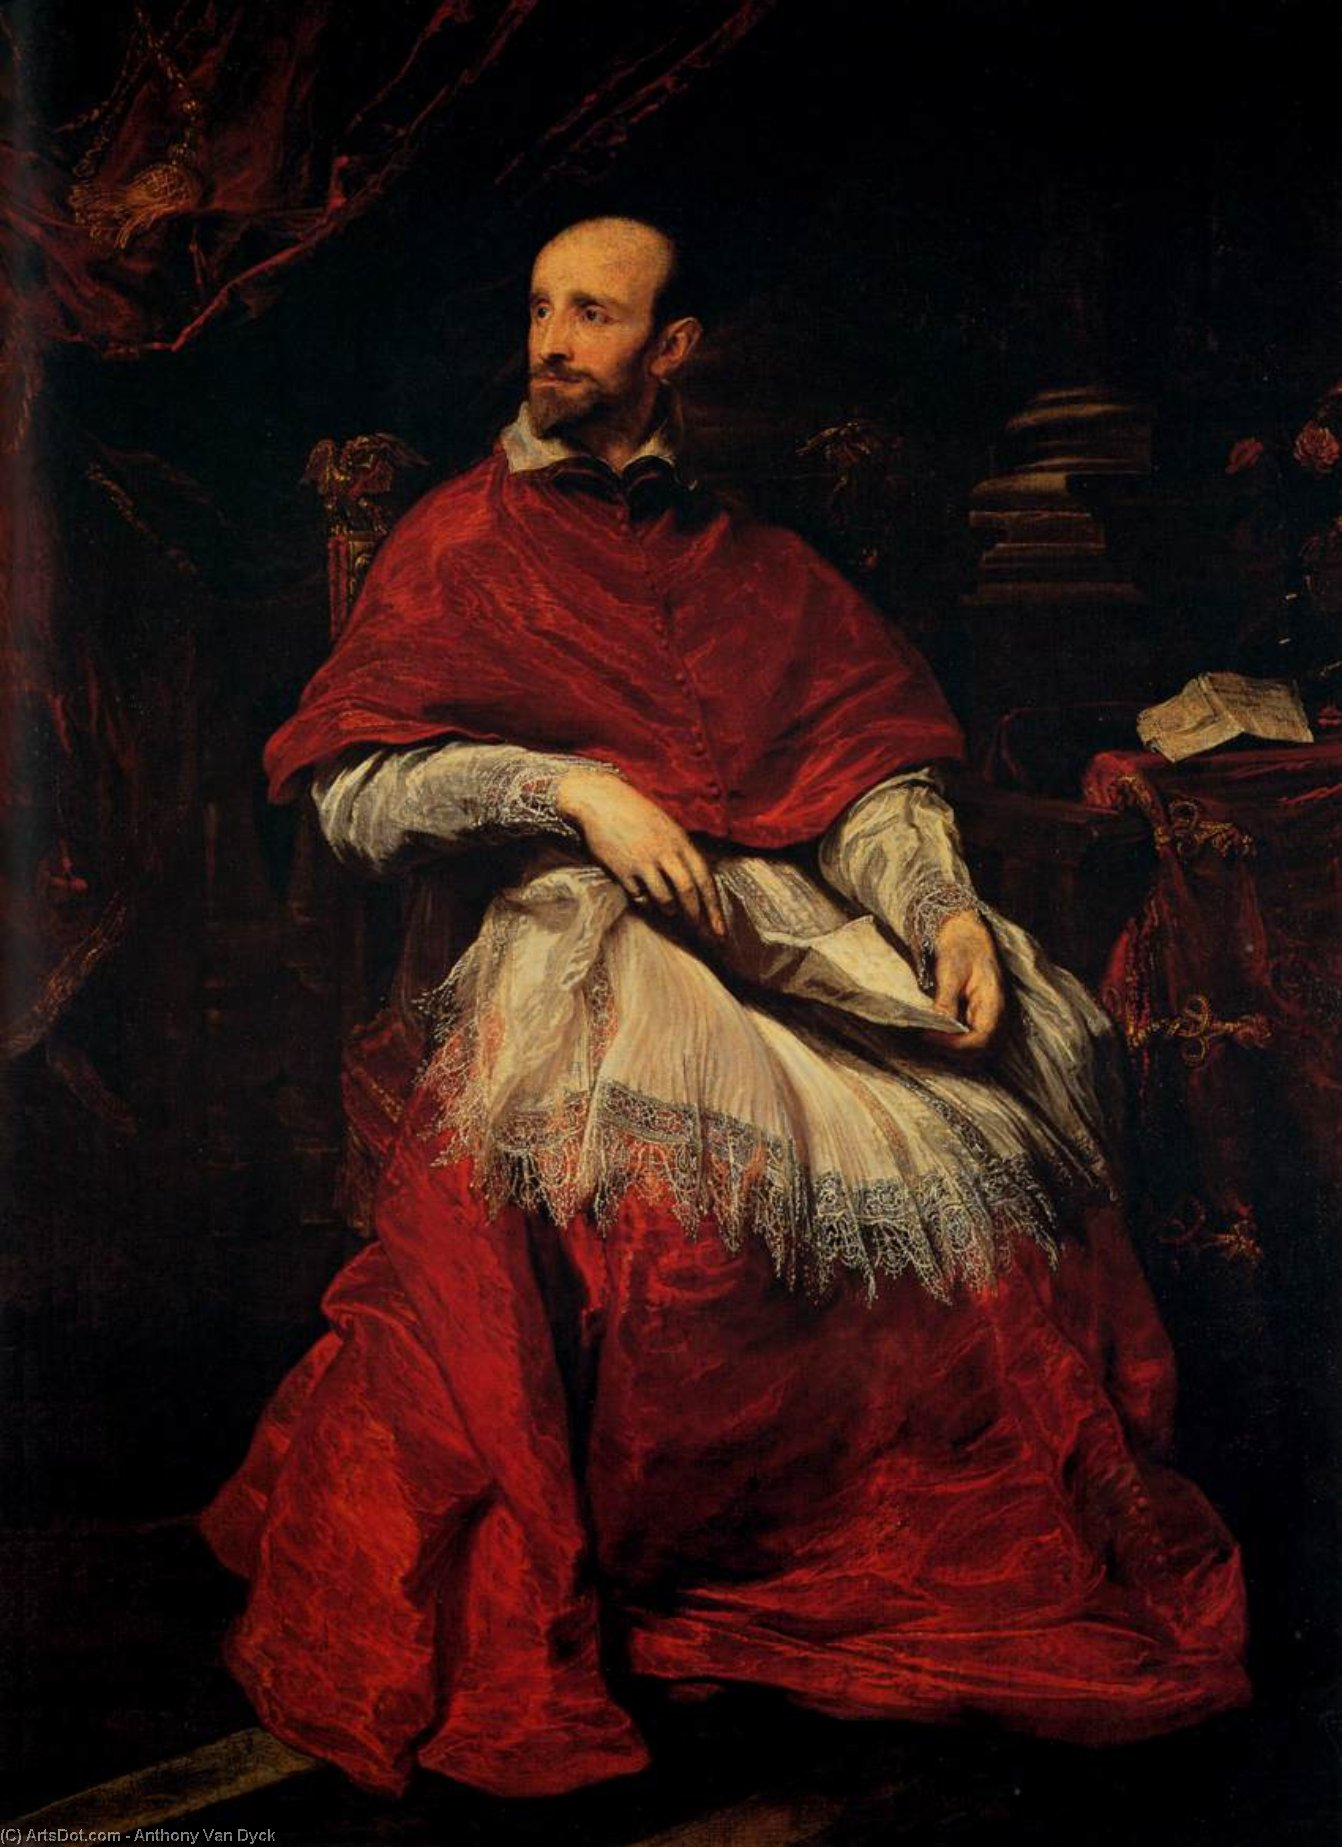 Wikioo.org - The Encyclopedia of Fine Arts - Painting, Artwork by Anthony Van Dyck - Portrait of Cardinal Guido Bentivoglio